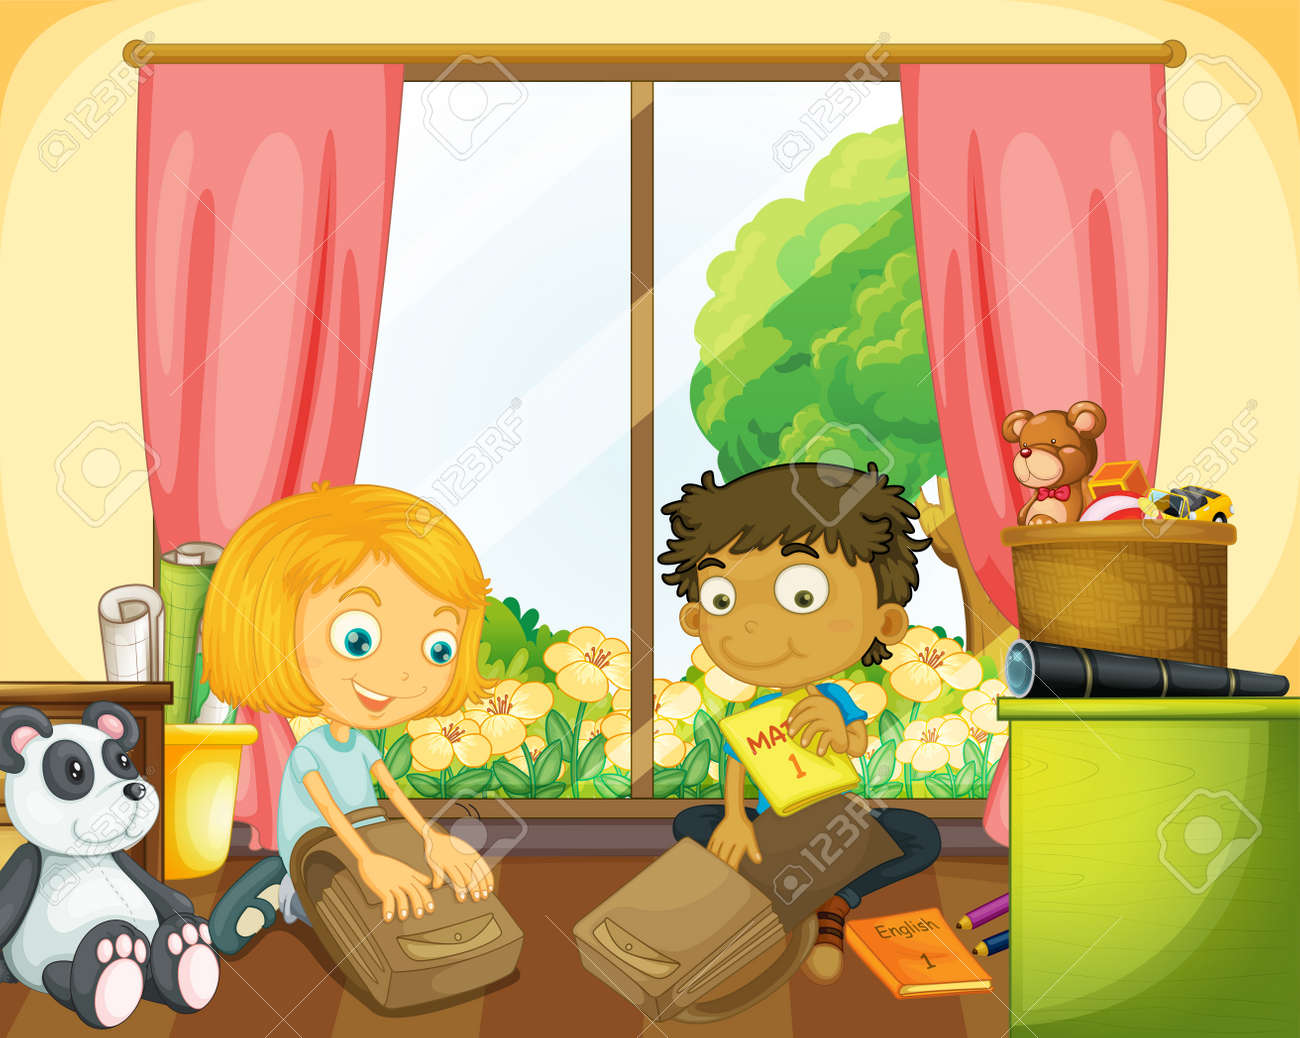 Two kids packing schoolbag in the house illustration - 159784276